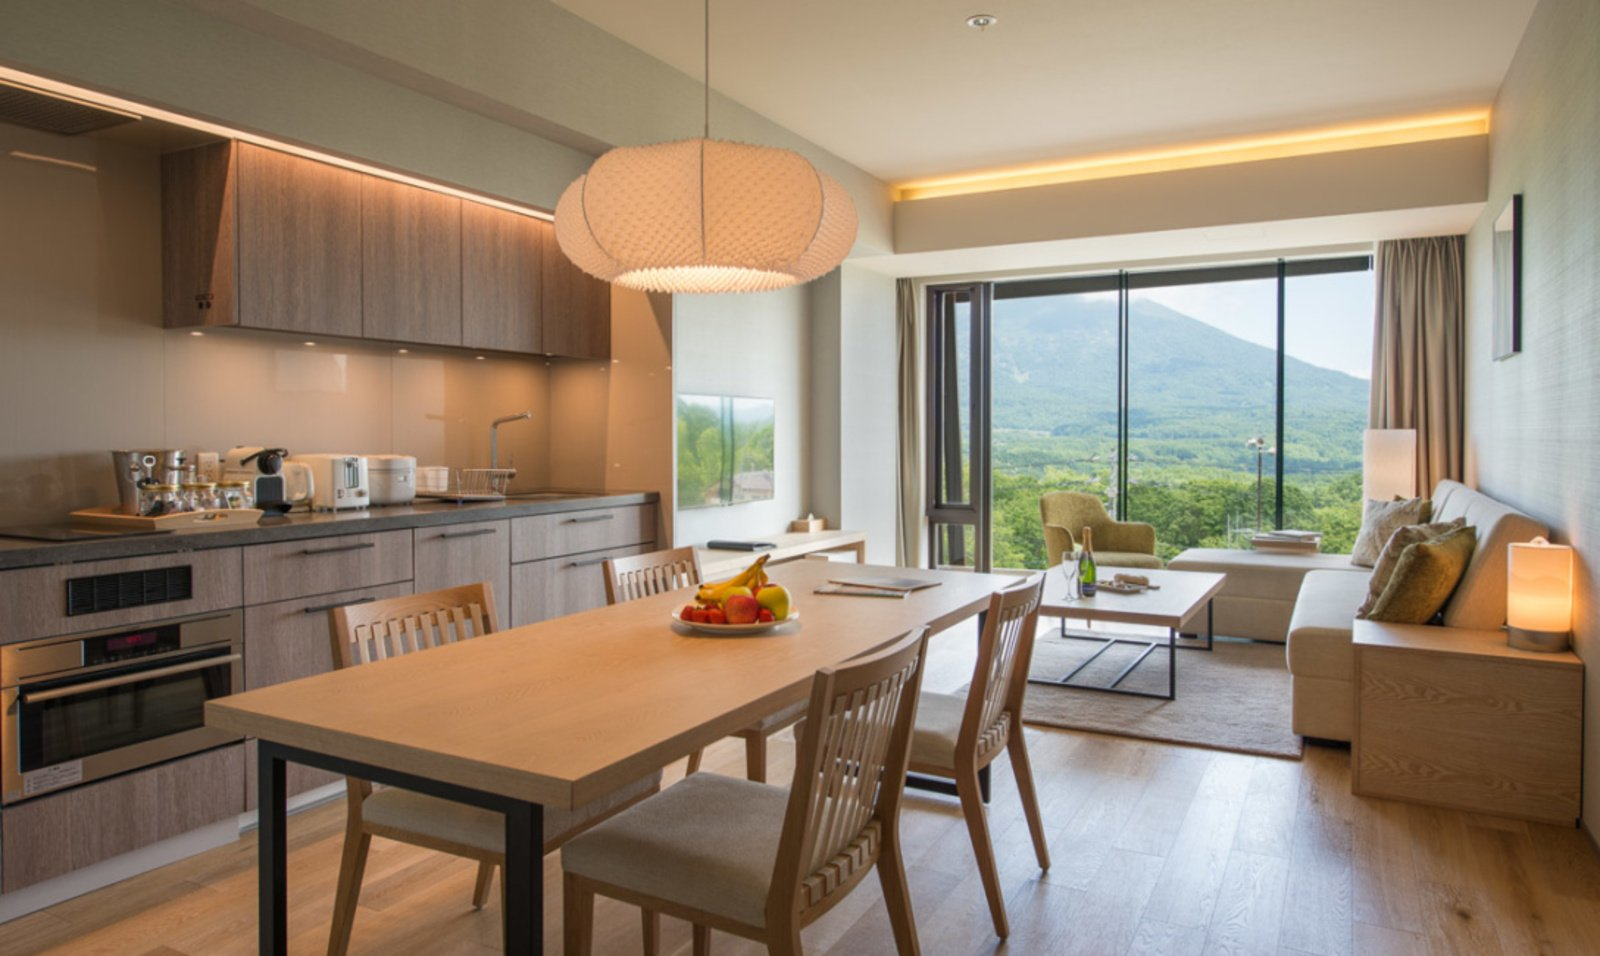 A 2 bedroom apartment with Yotei view at AYA Niseko.